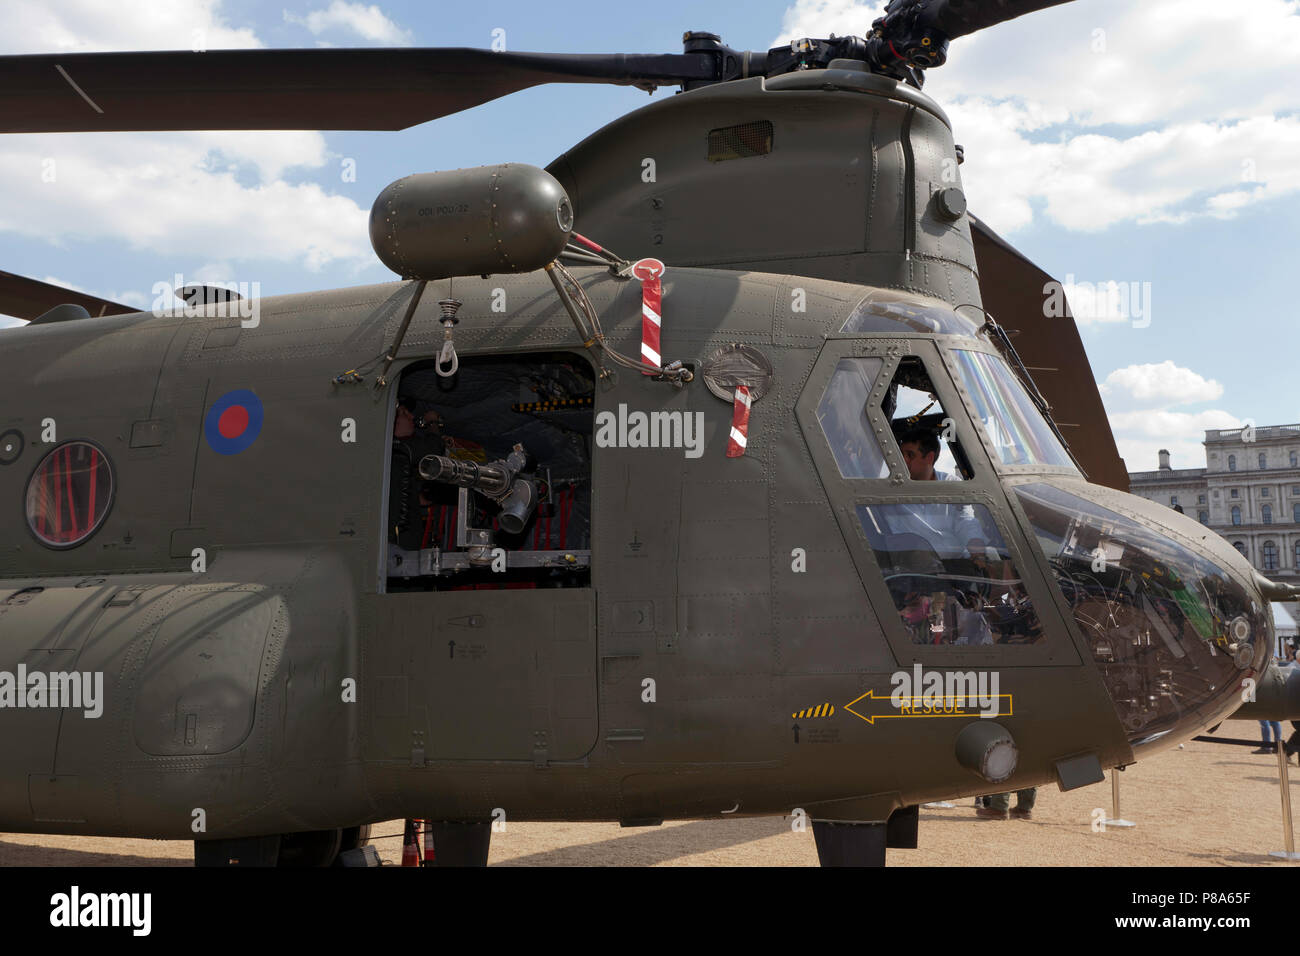 Close-up of the front of a Boeing Chinook HC6A  heavy-lift helicopter, on display at Horse Guards Parade, as part of RAF 100 Centenary Celebration - Stock Image